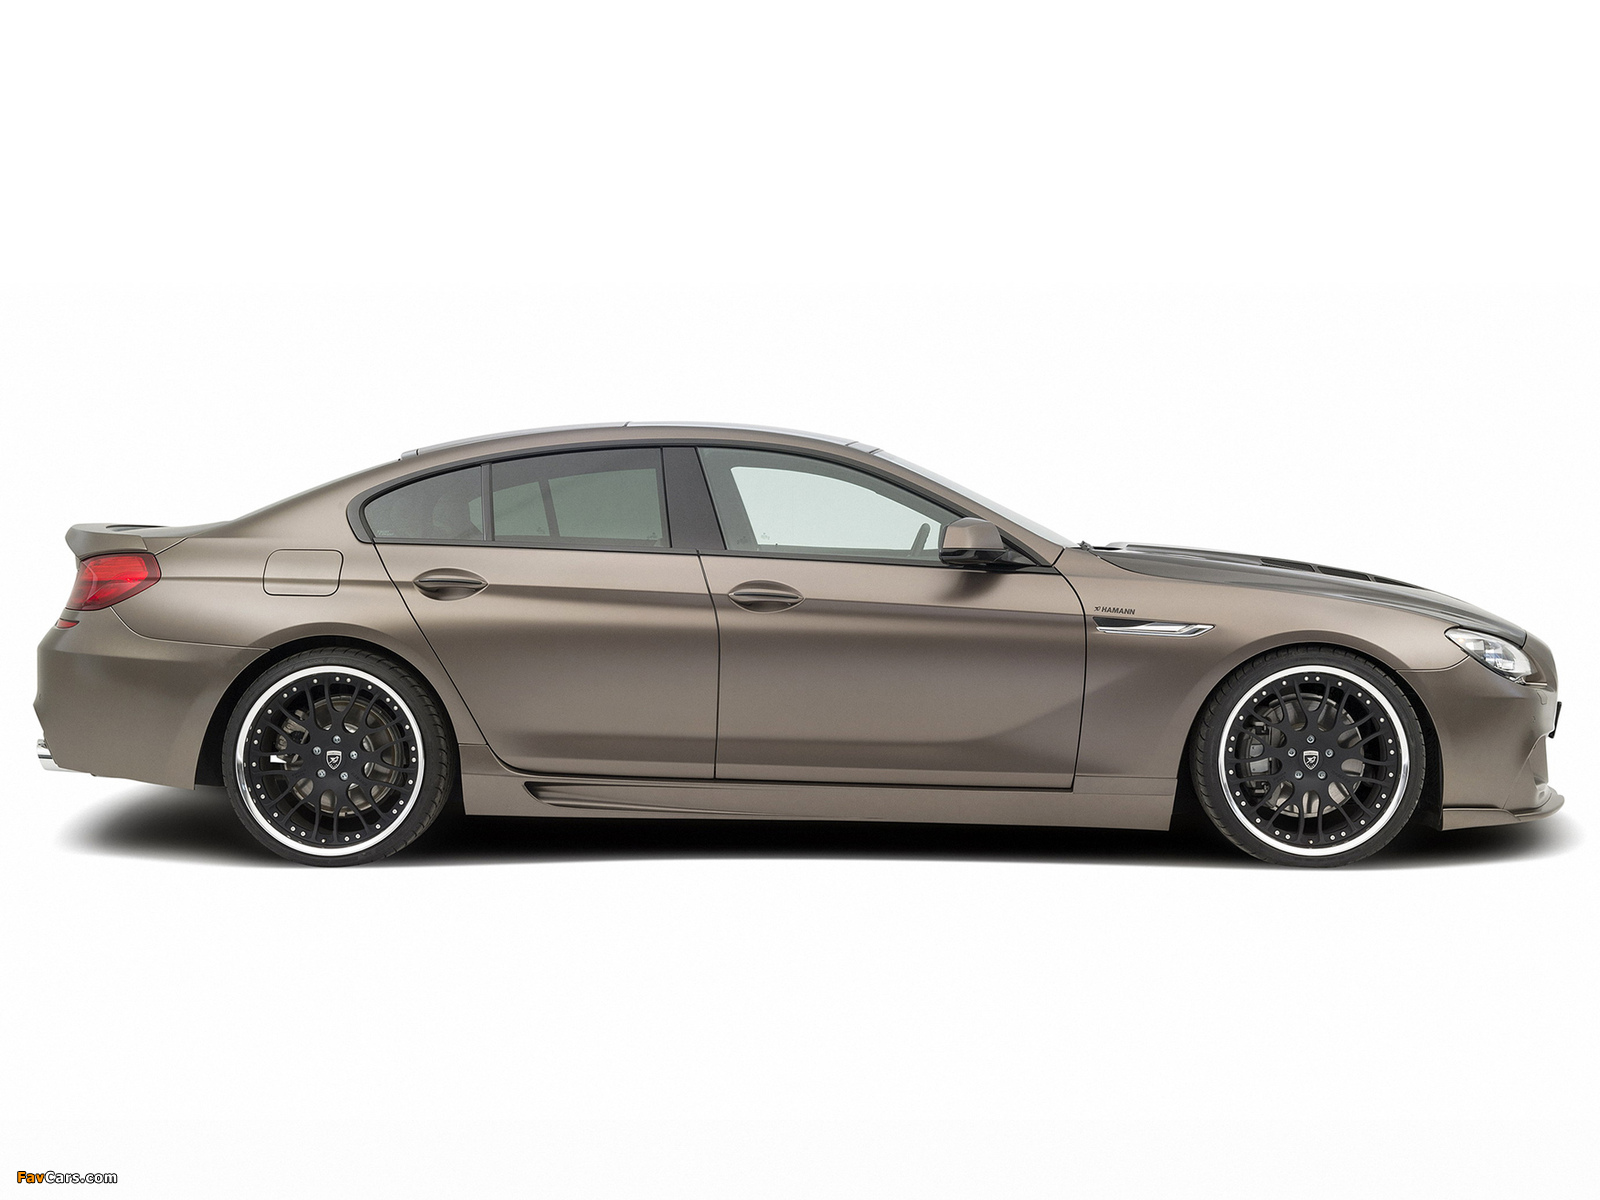 hamann bmw 6 series gran coupe m sport package f06 2013 photos 1600x1200. Black Bedroom Furniture Sets. Home Design Ideas